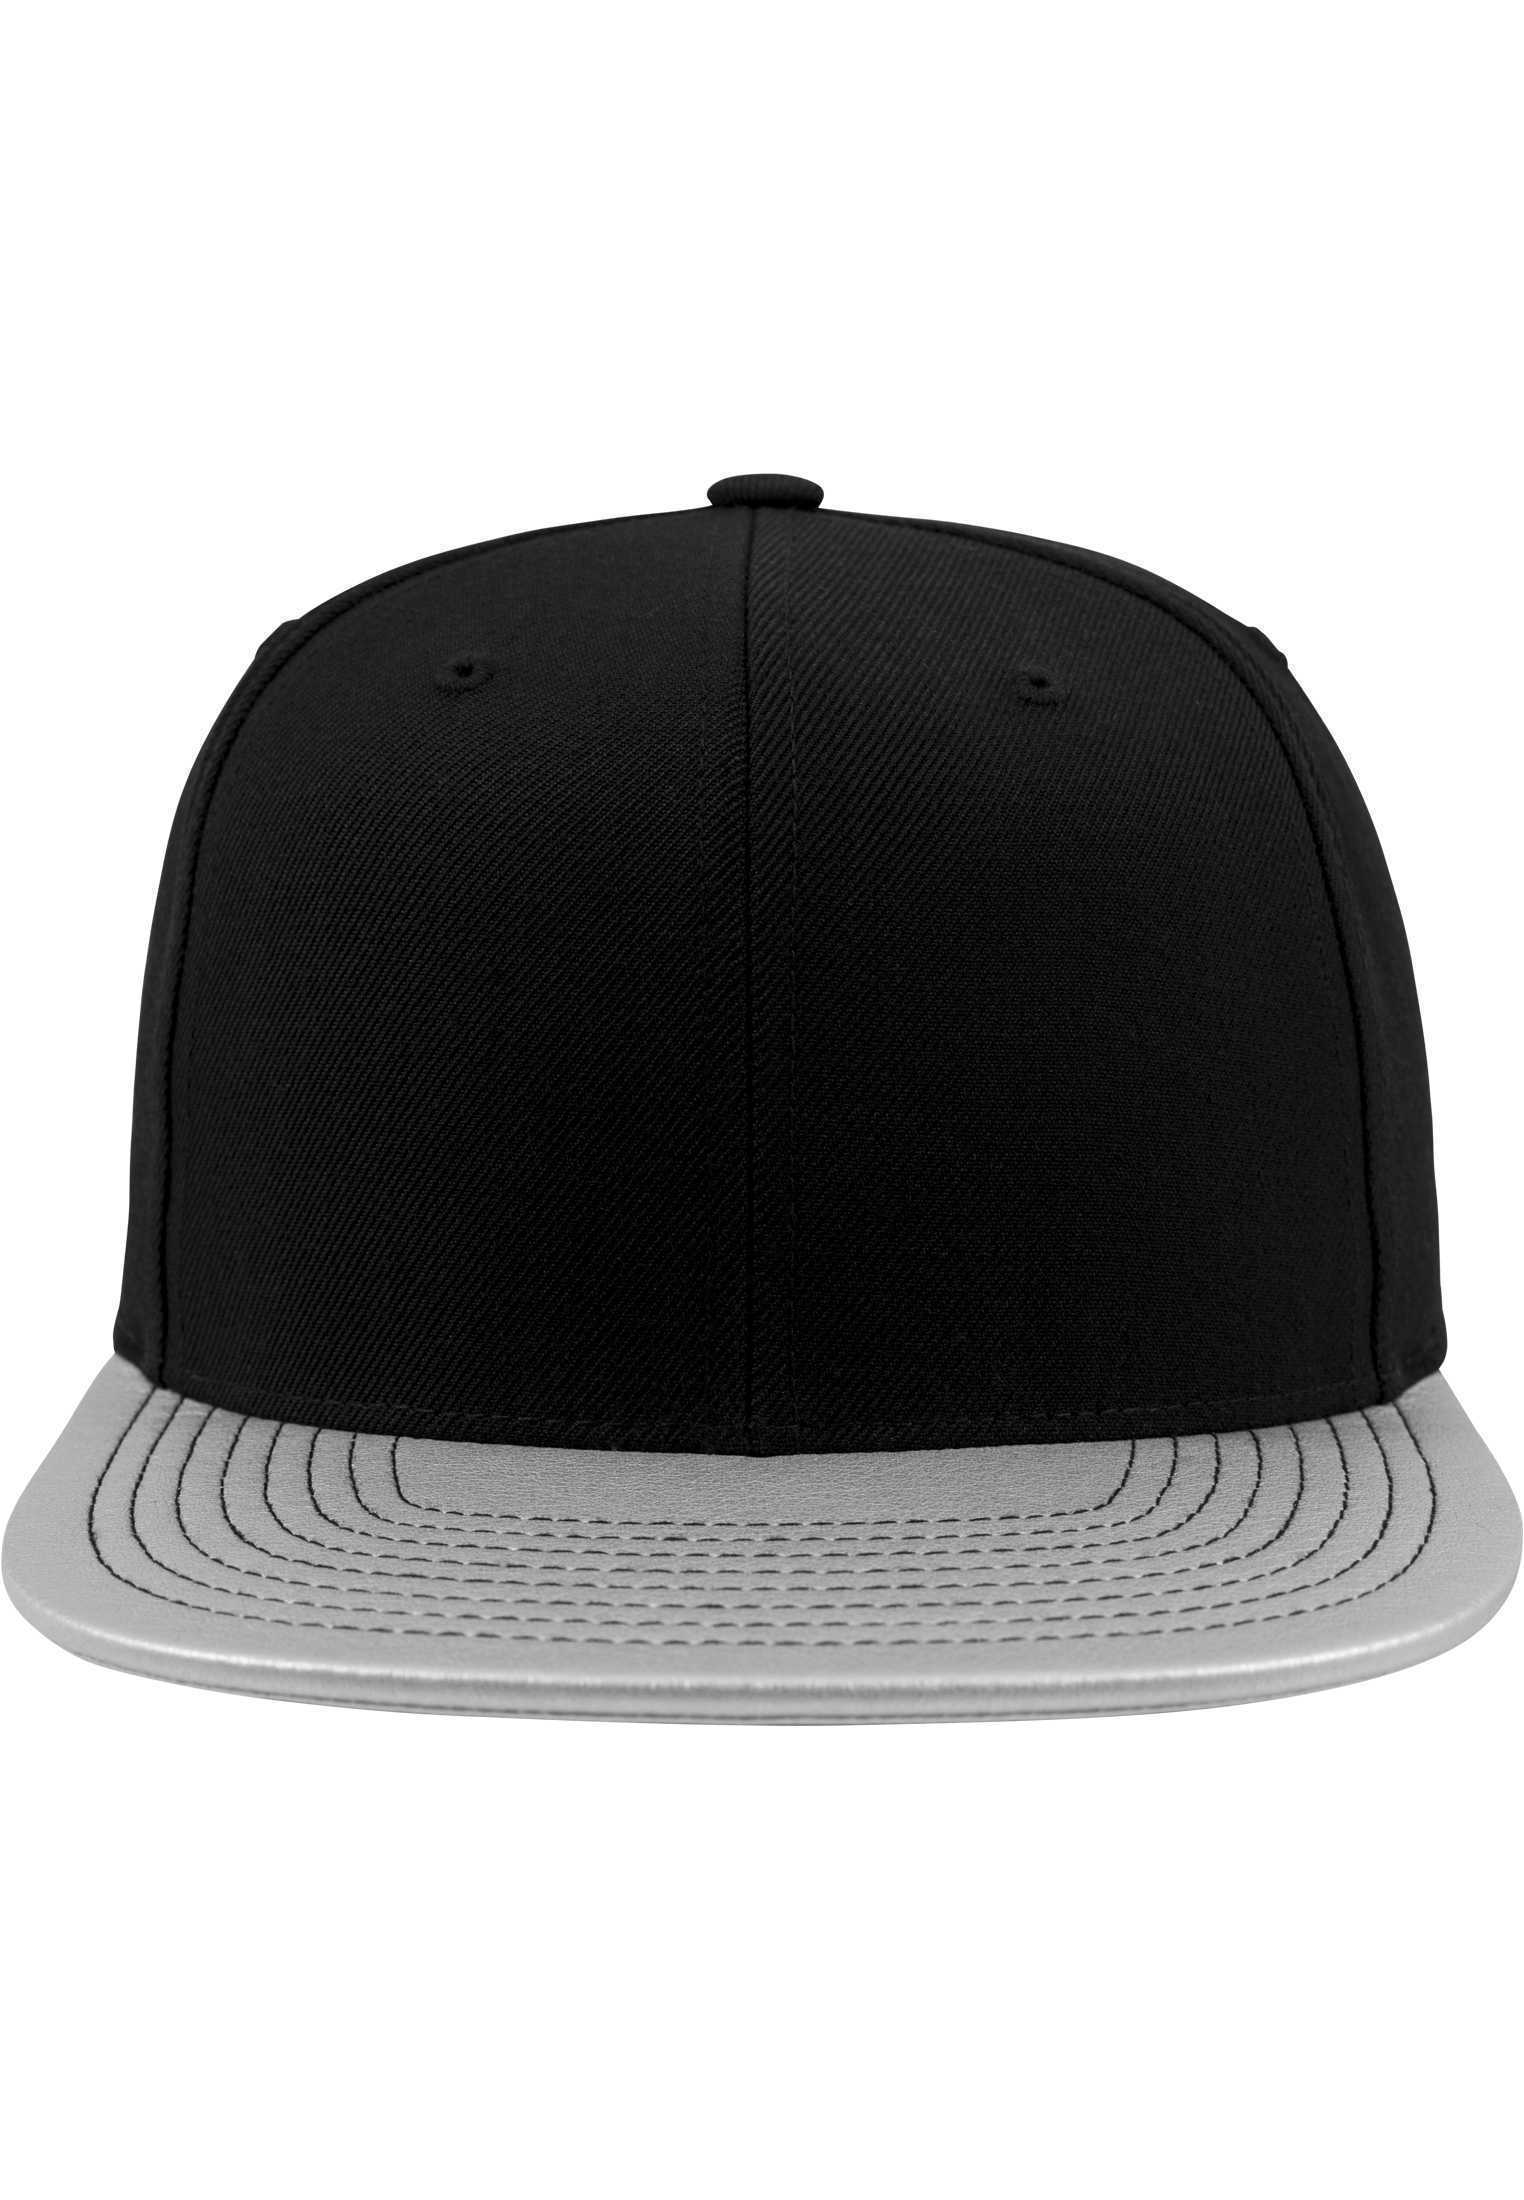 07336ef0af5 Flexfit Metallic Visor Snapback Cap Silver. About this product. Picture 1  of 2  Picture 2 of 2